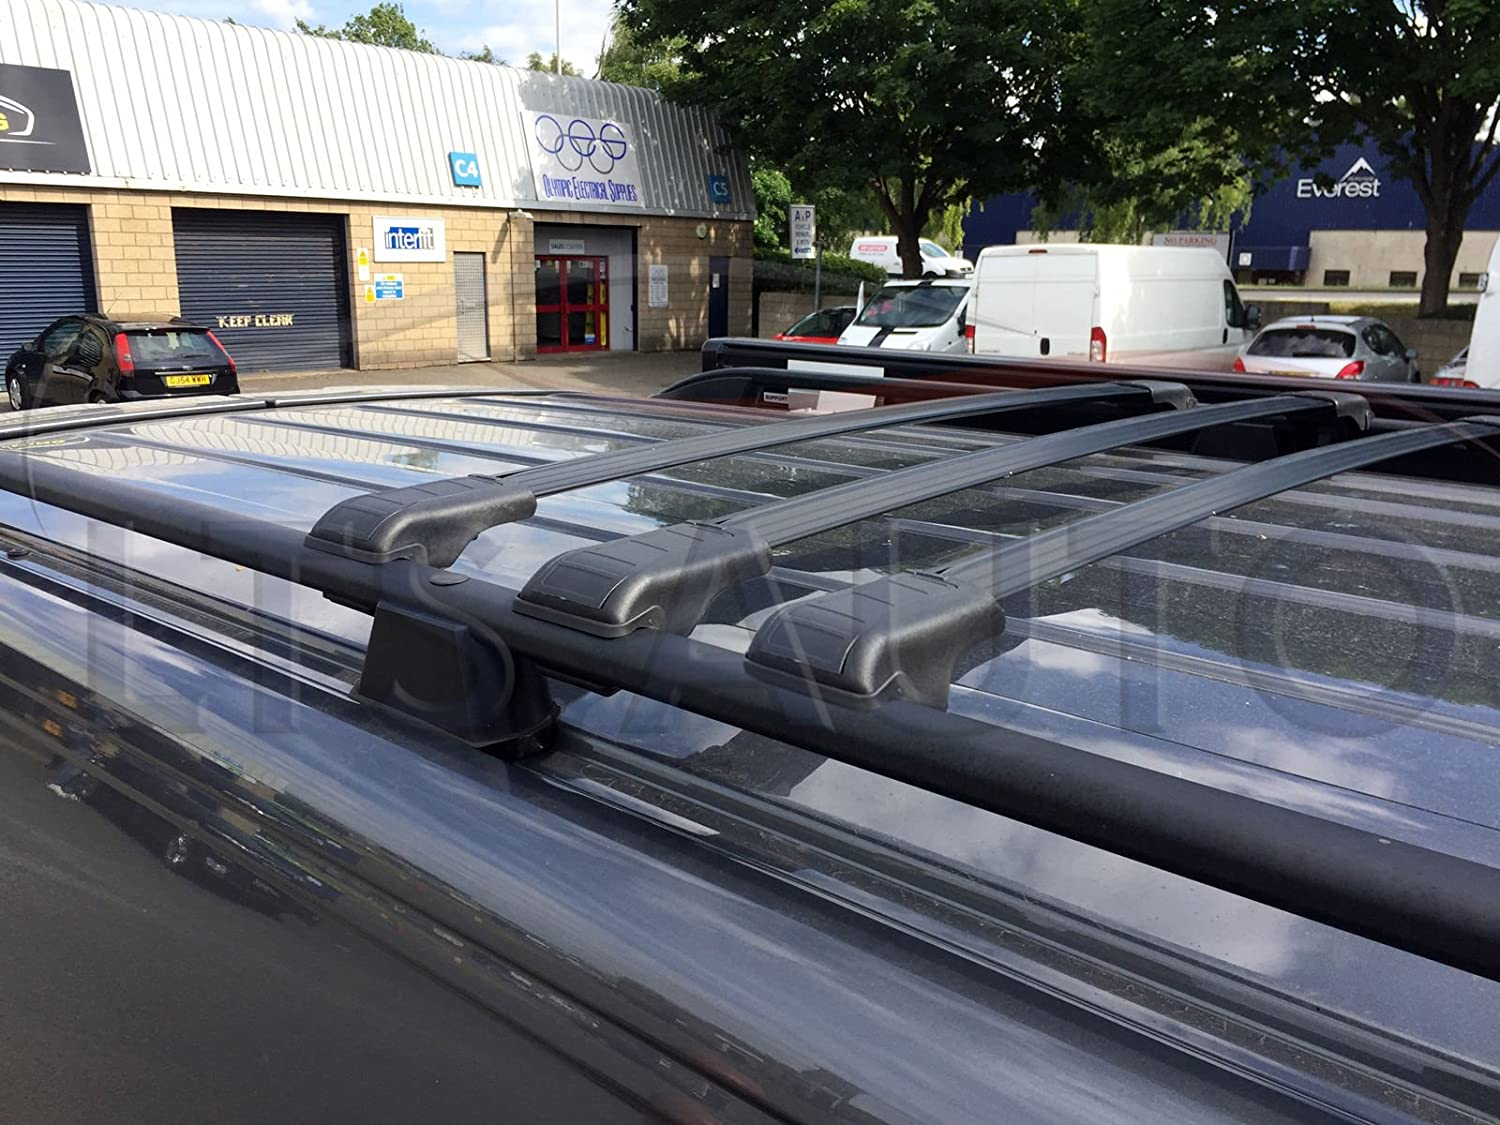 RENAULT KADJAR LOCKABLE ROOF RACK BAR CROSS BARS 2015 ONWARDS 75 KG